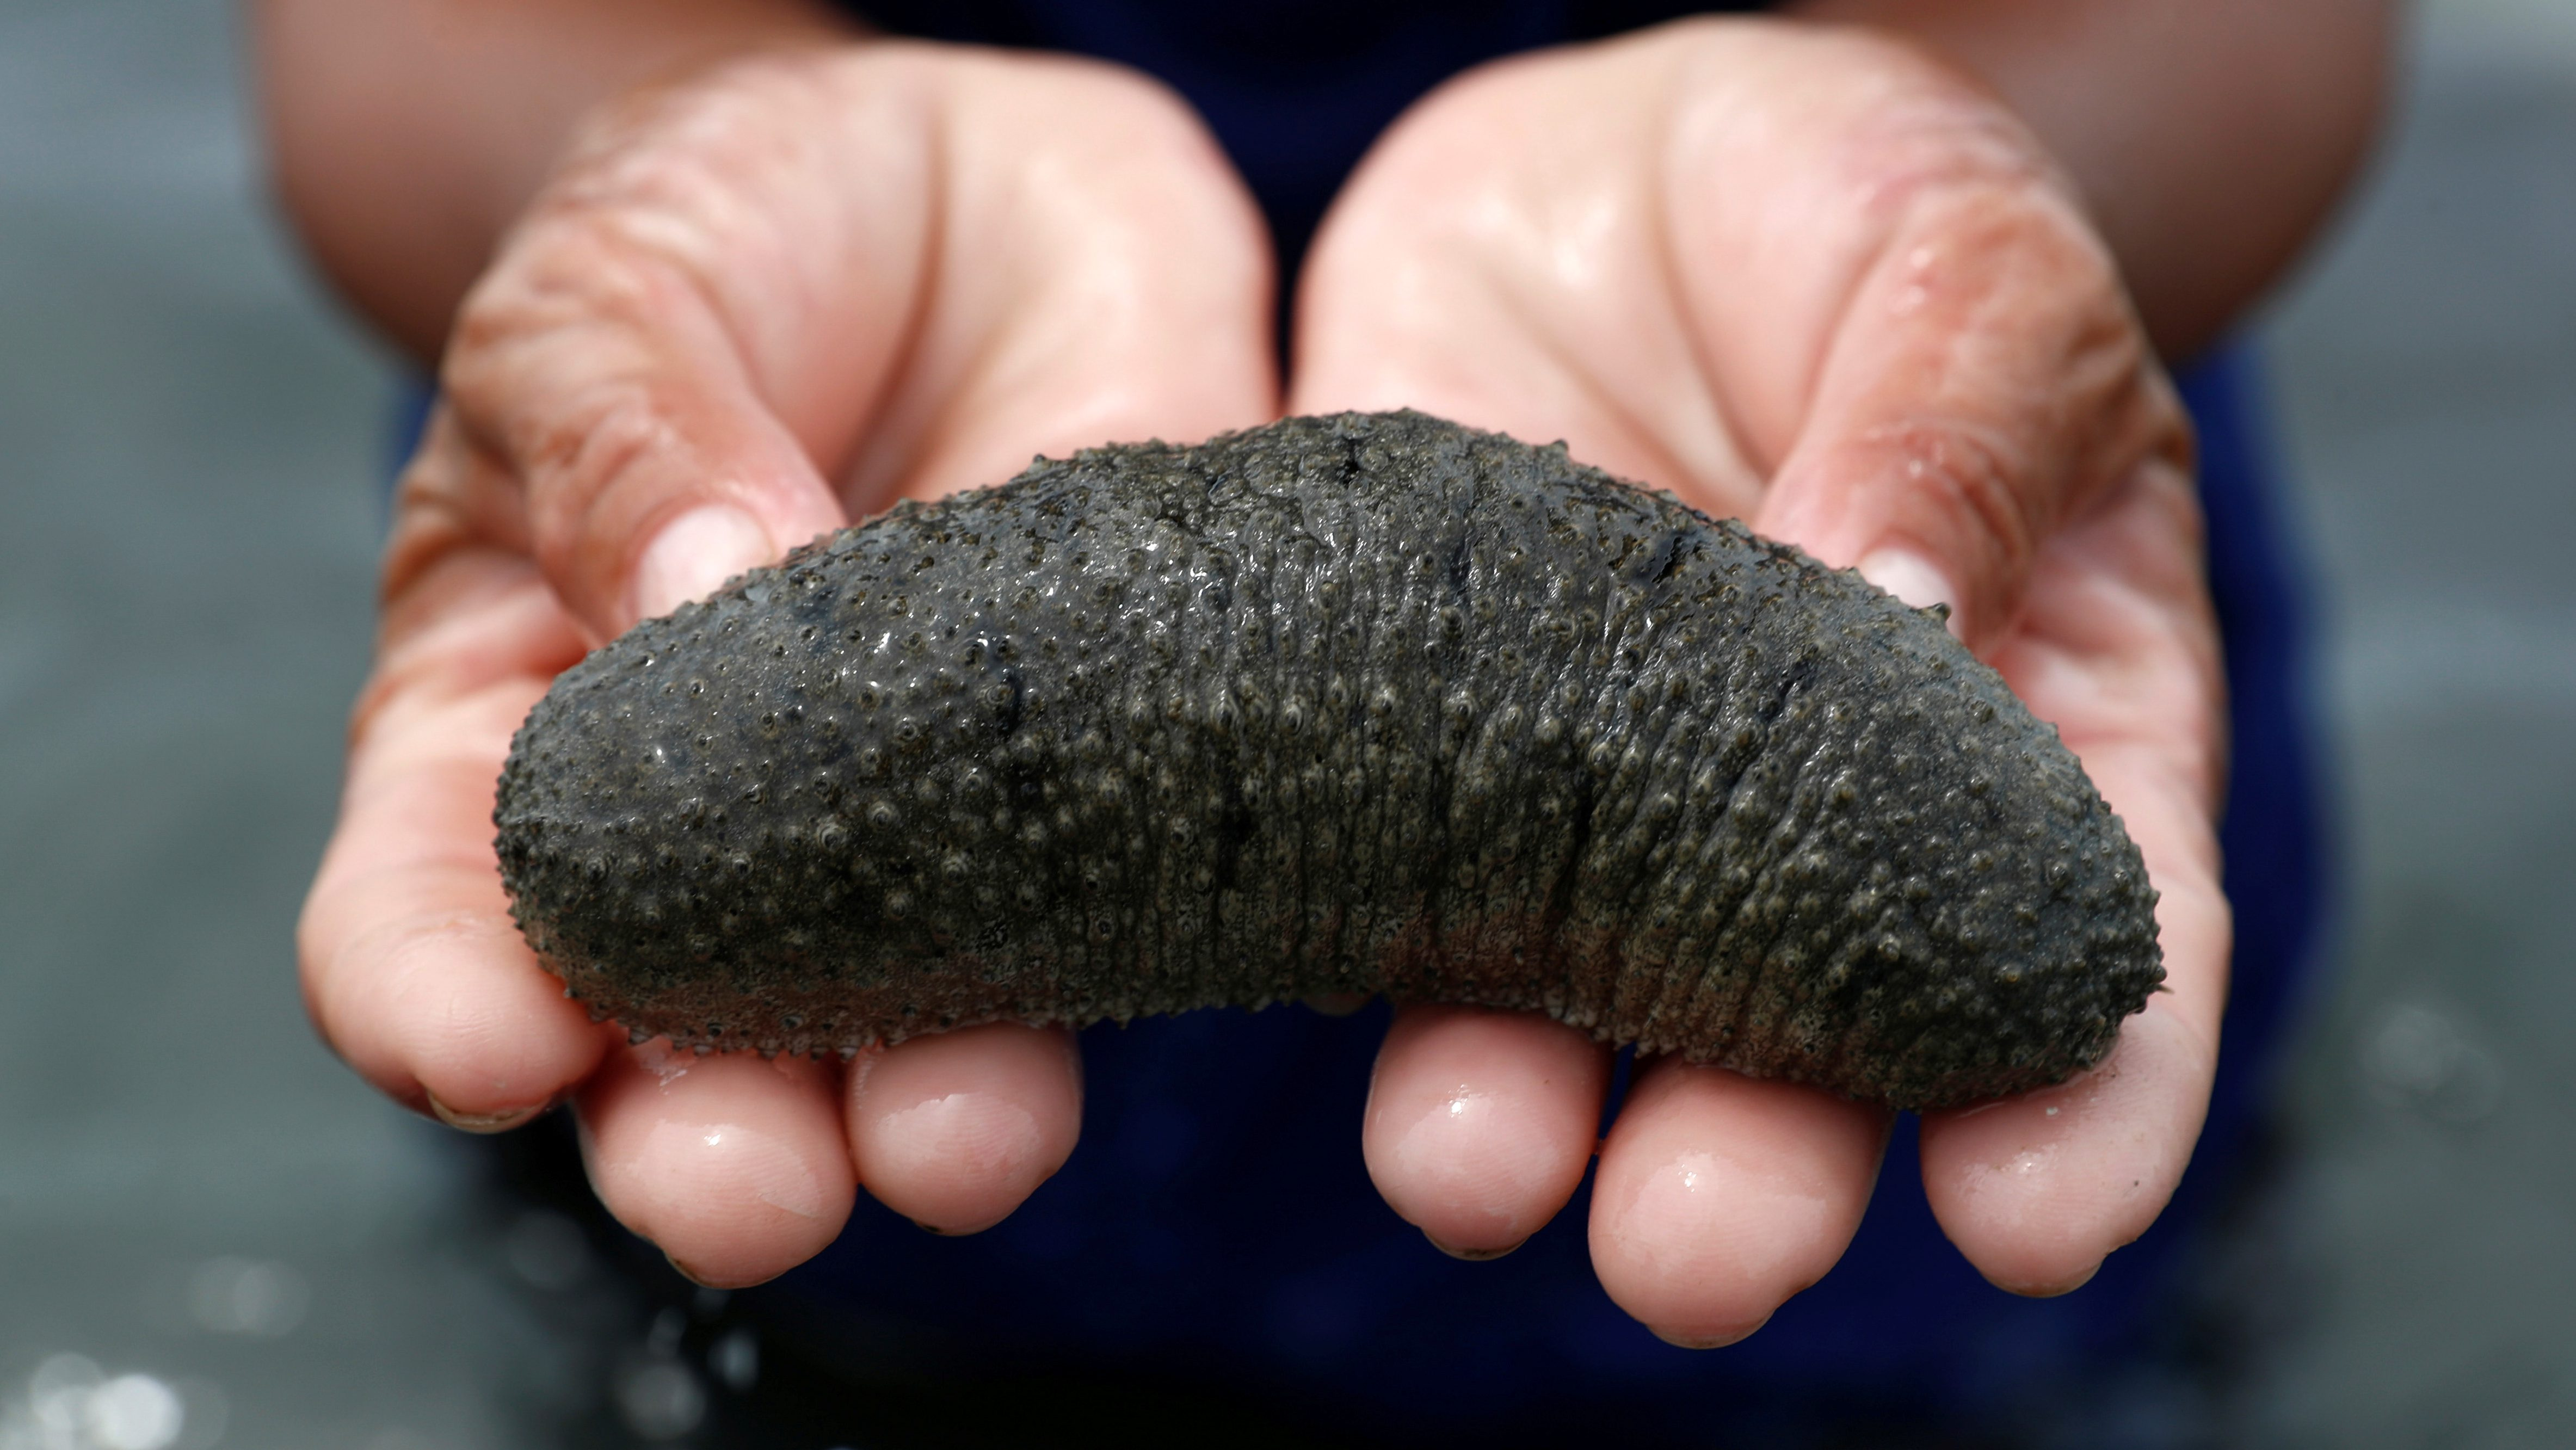 A border arrest exposes a dangerous and lucrative black market for sea cucumbers